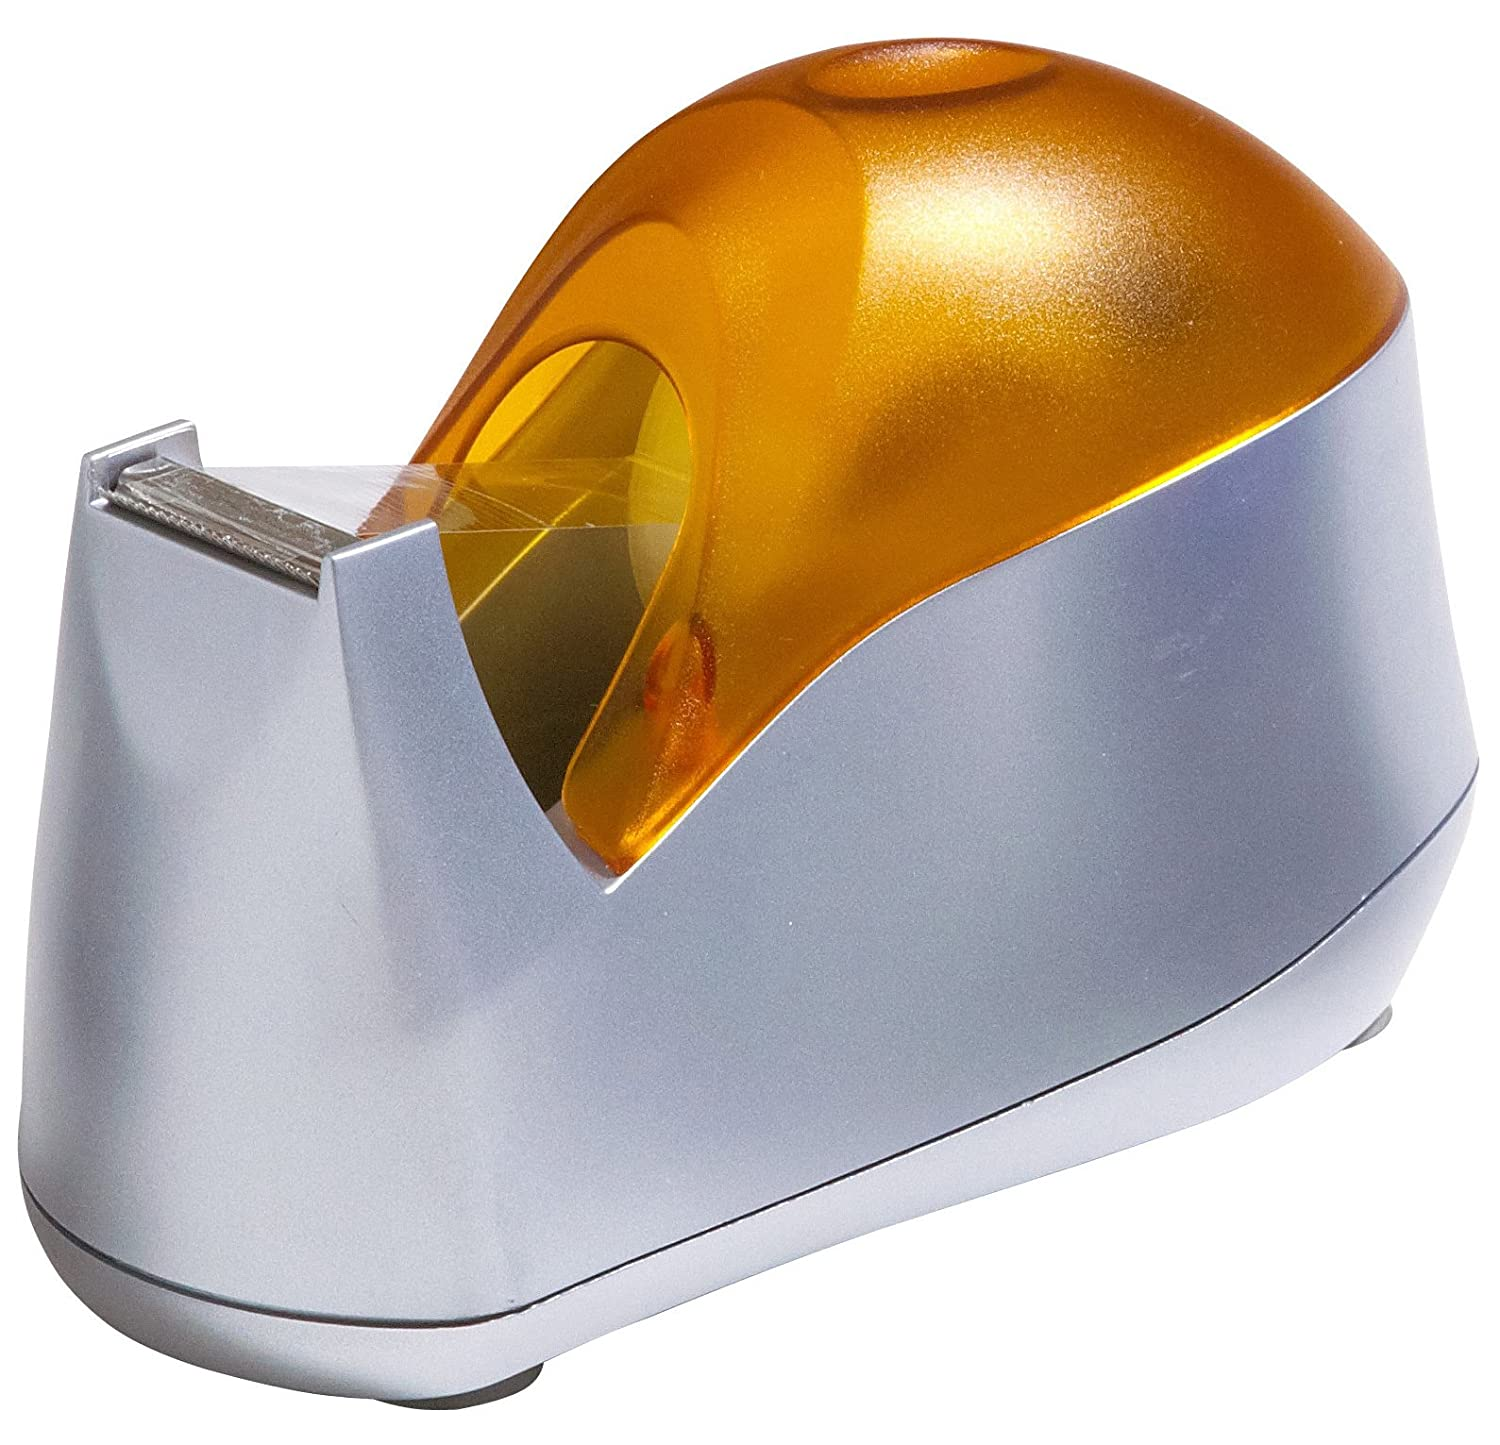 TSI Sticky Tape Dispenser with Tape, 19mm x 10m